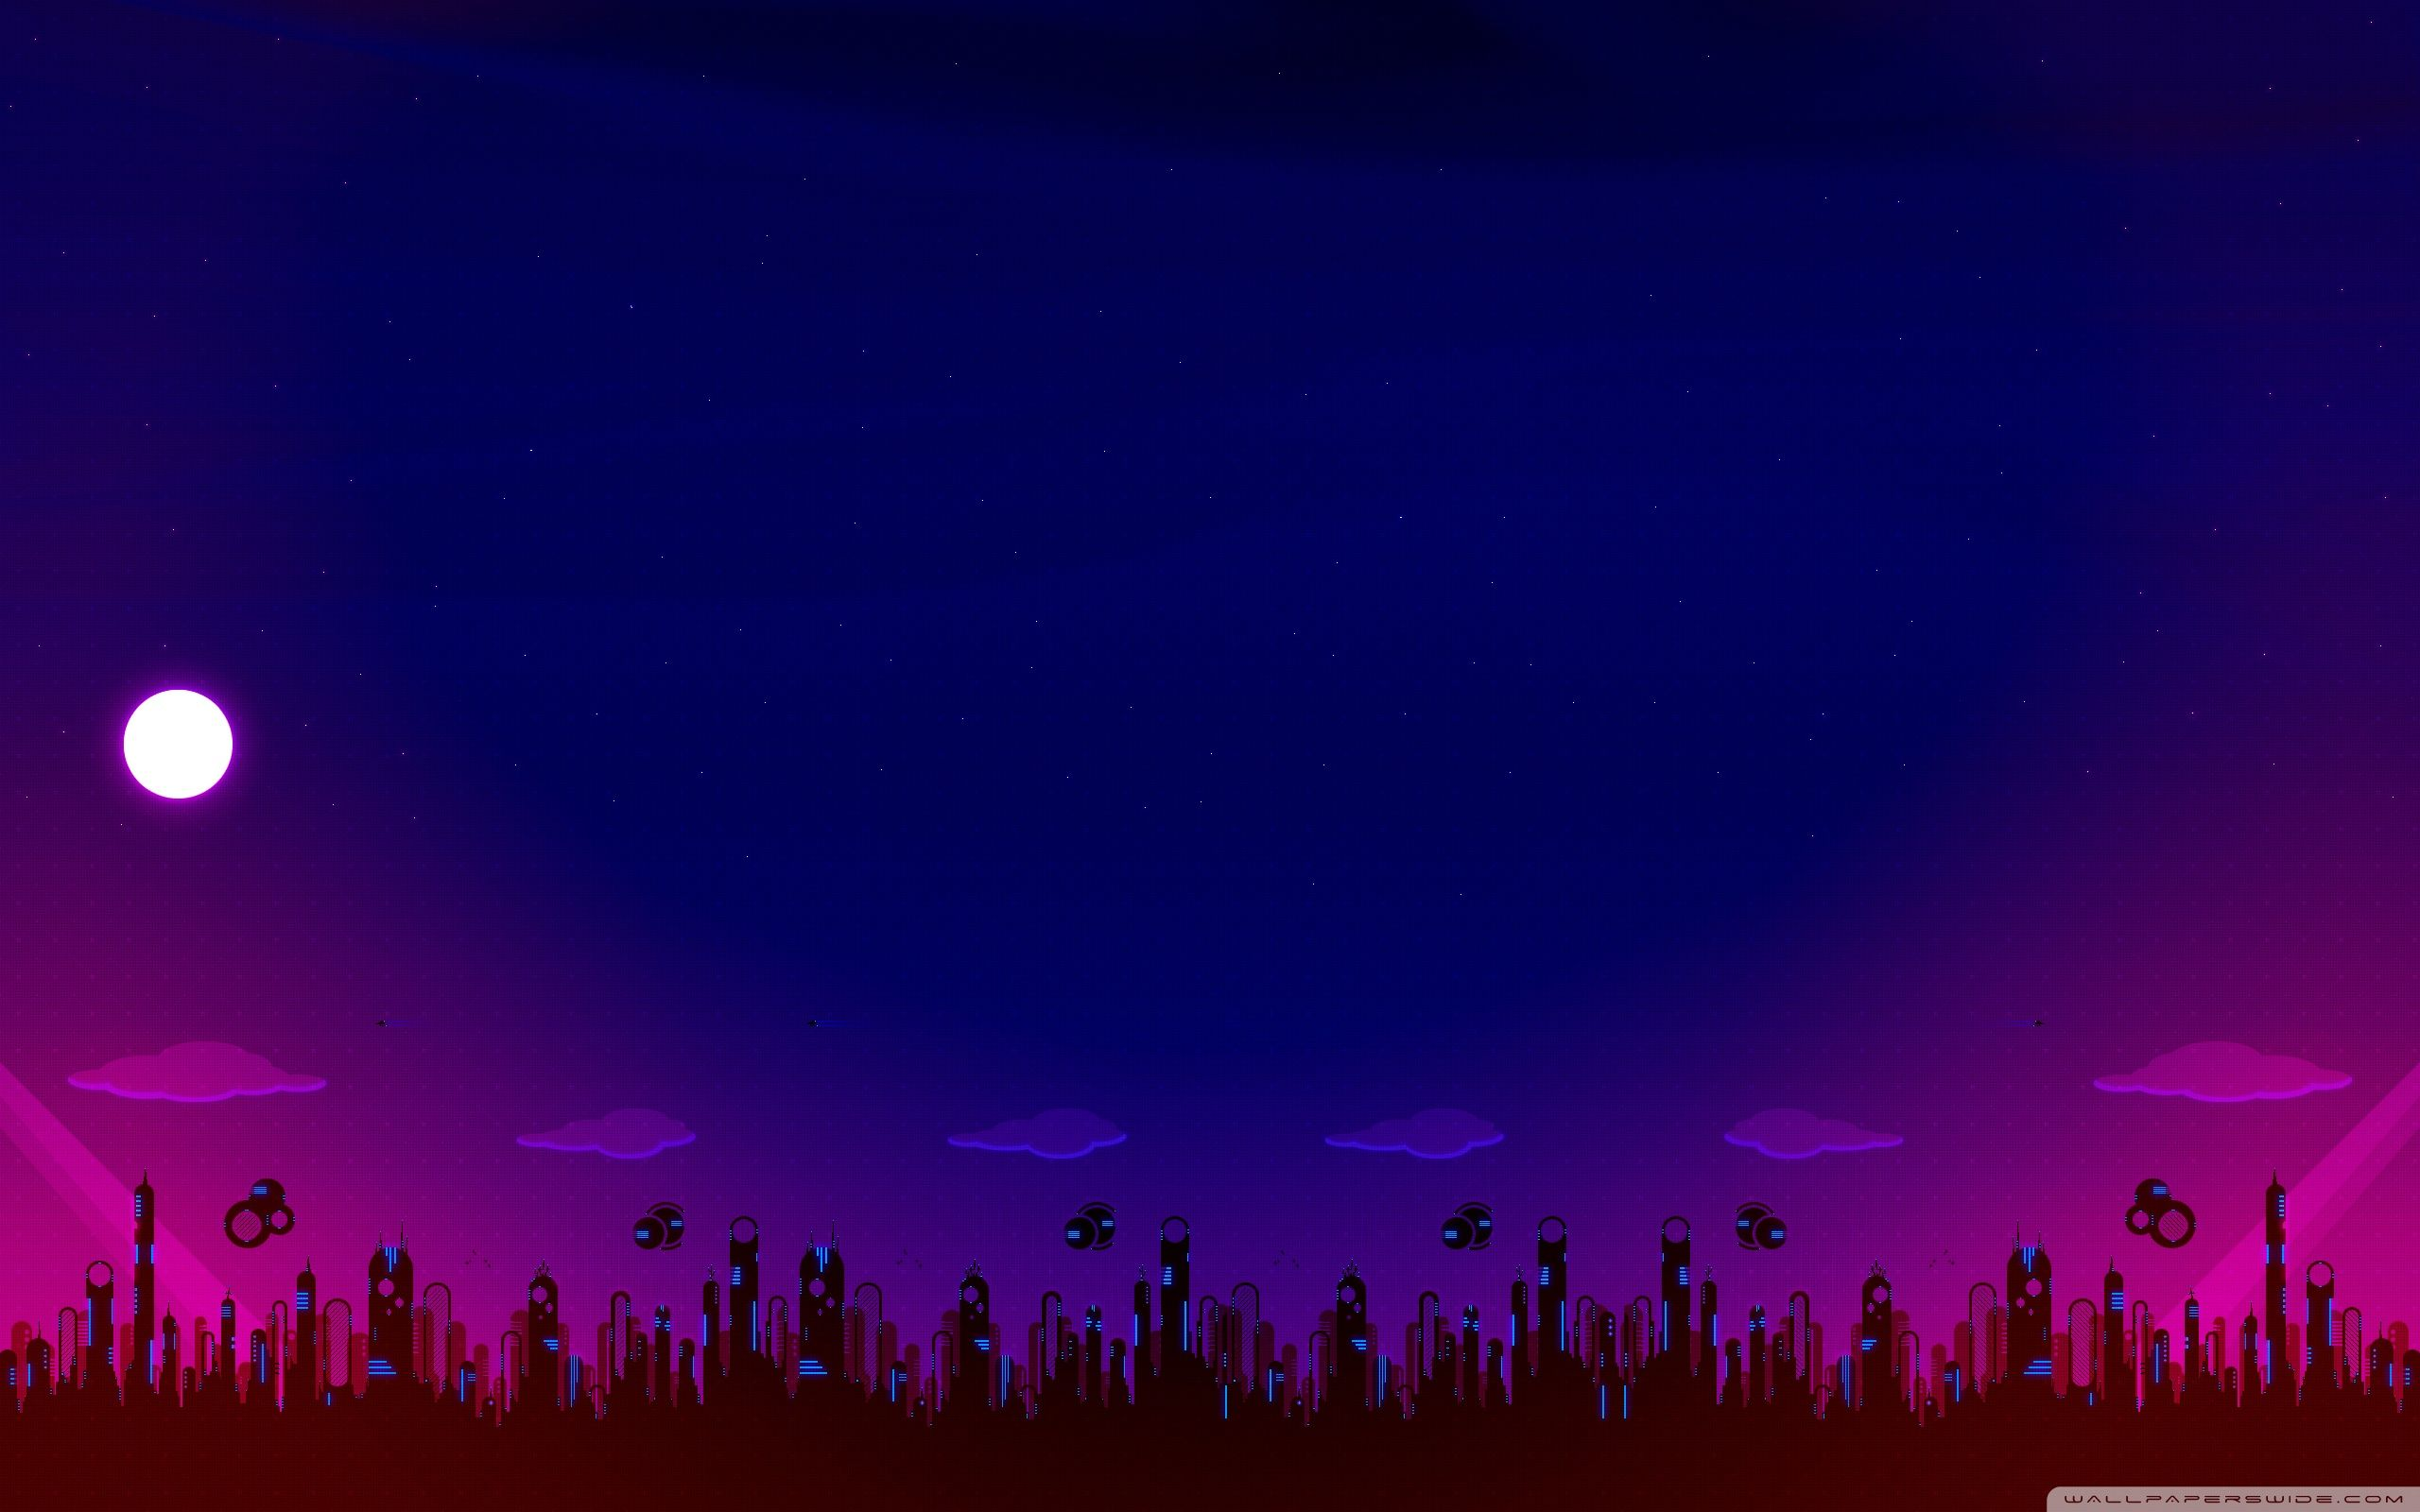 Night Illustration Hd Wallpapers Top Free Night Illustration Hd